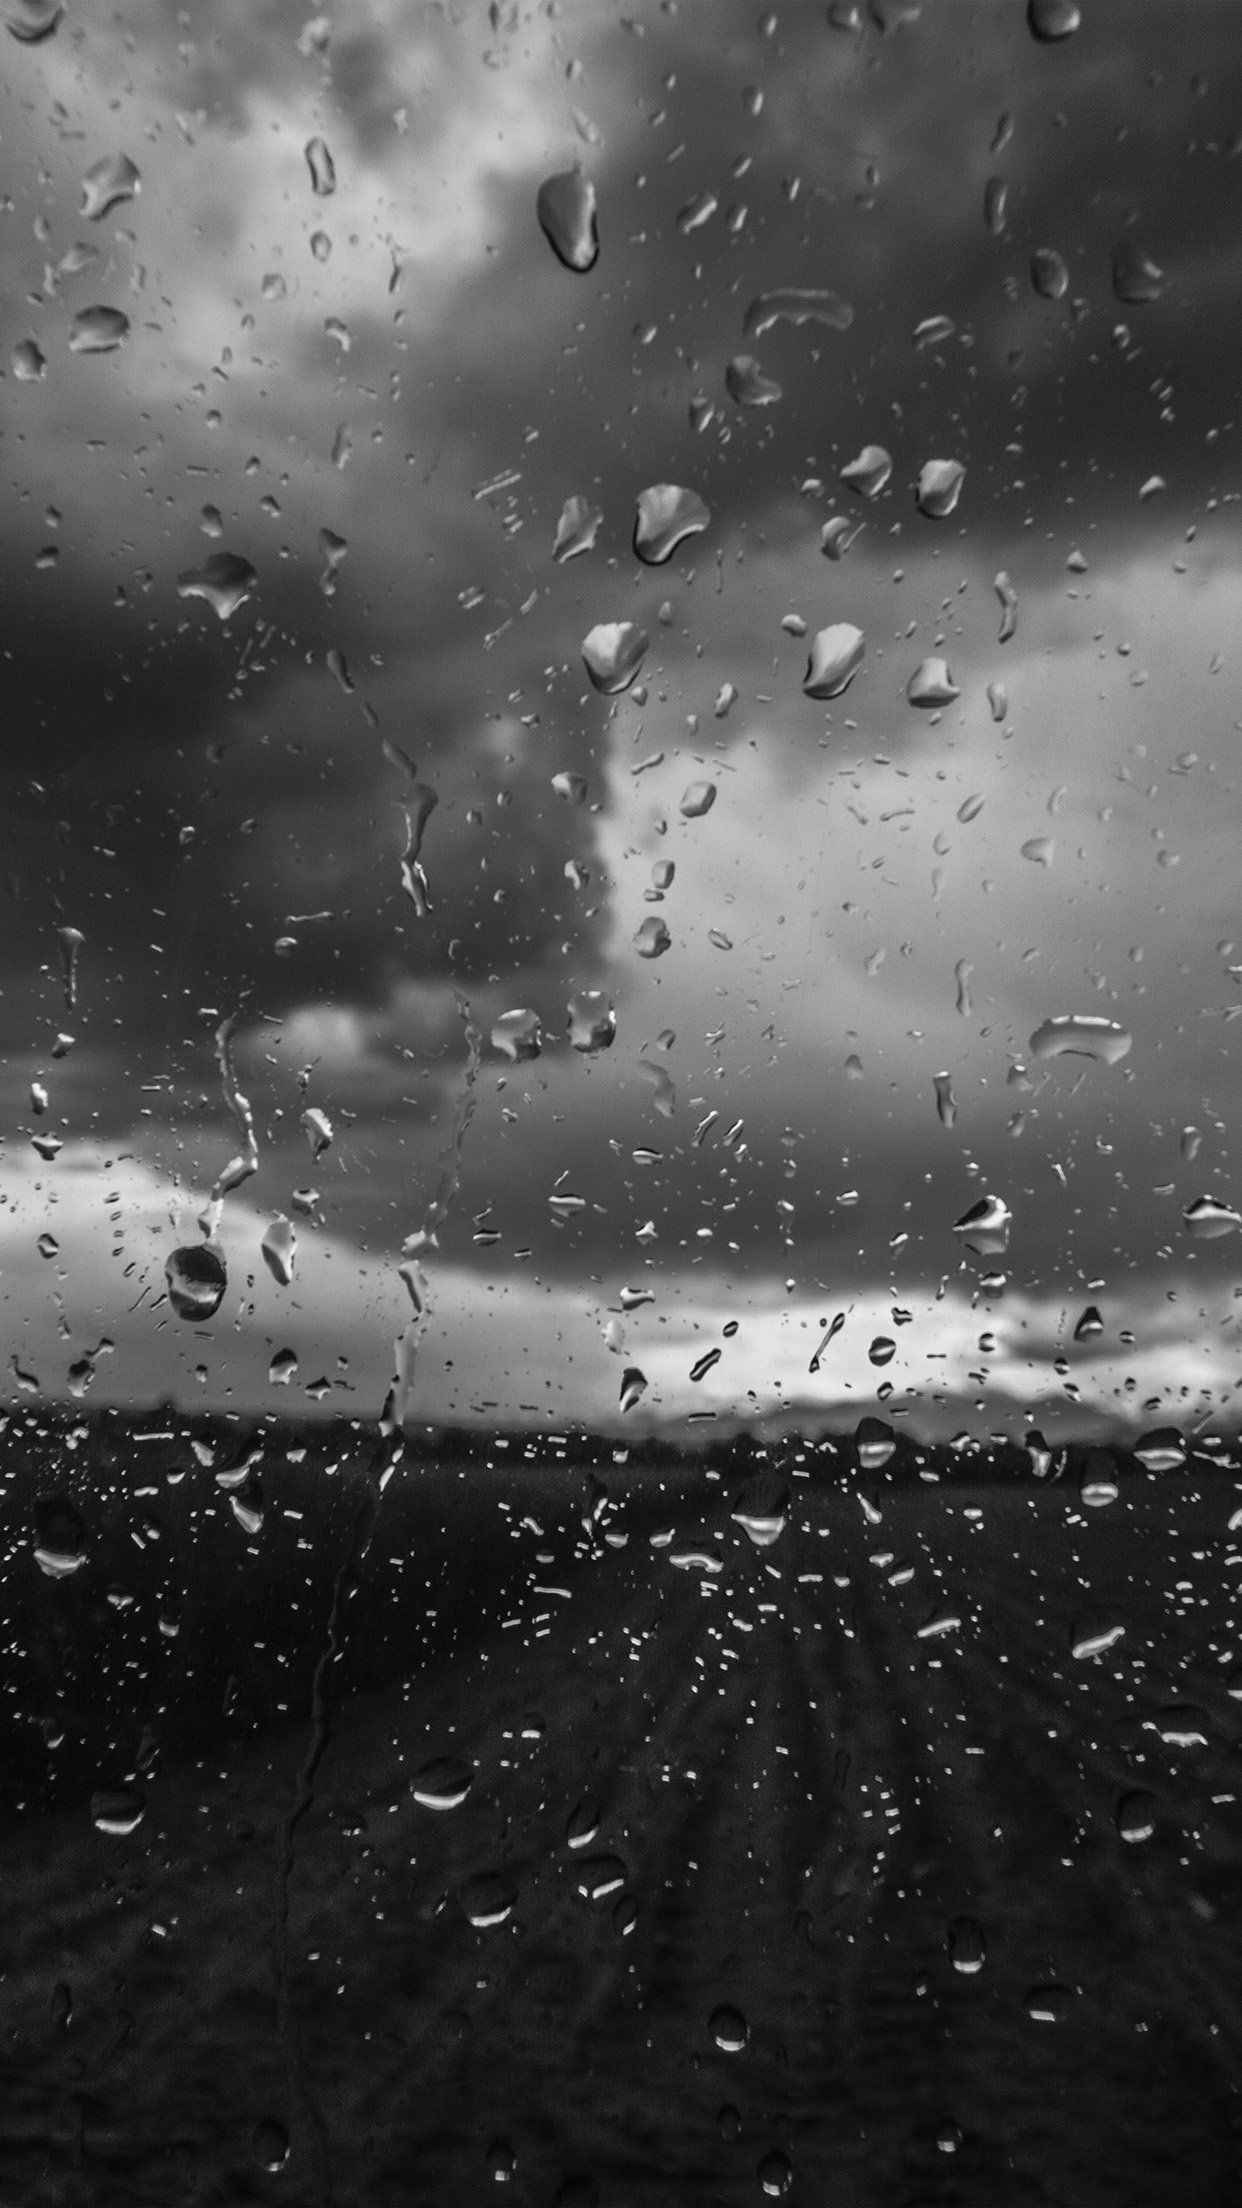 Rain Aesthetic 2839057   HD Wallpaper Backgrounds Download